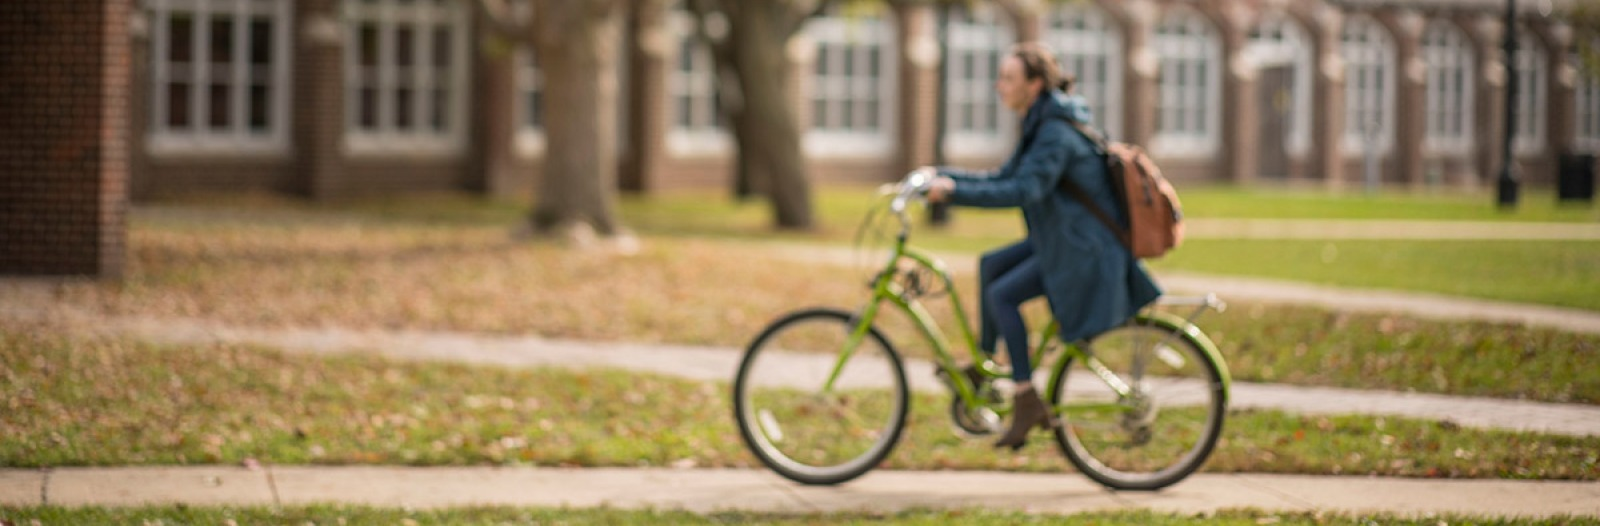 student on bike in south campus with autumn leaves